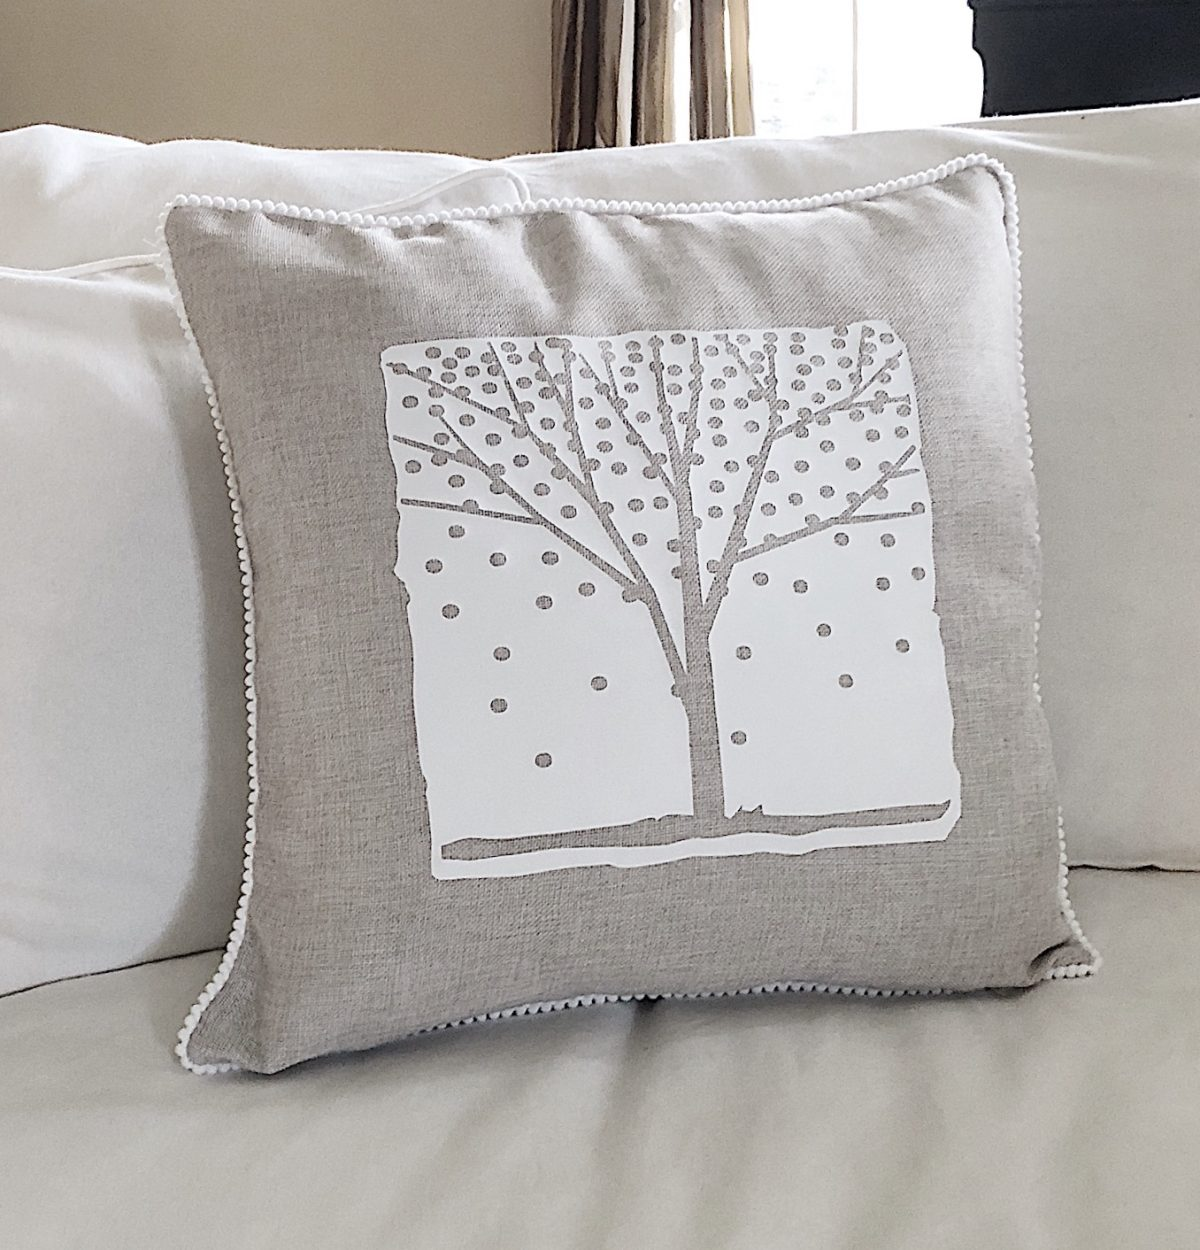 Diy Pillow Covers 5